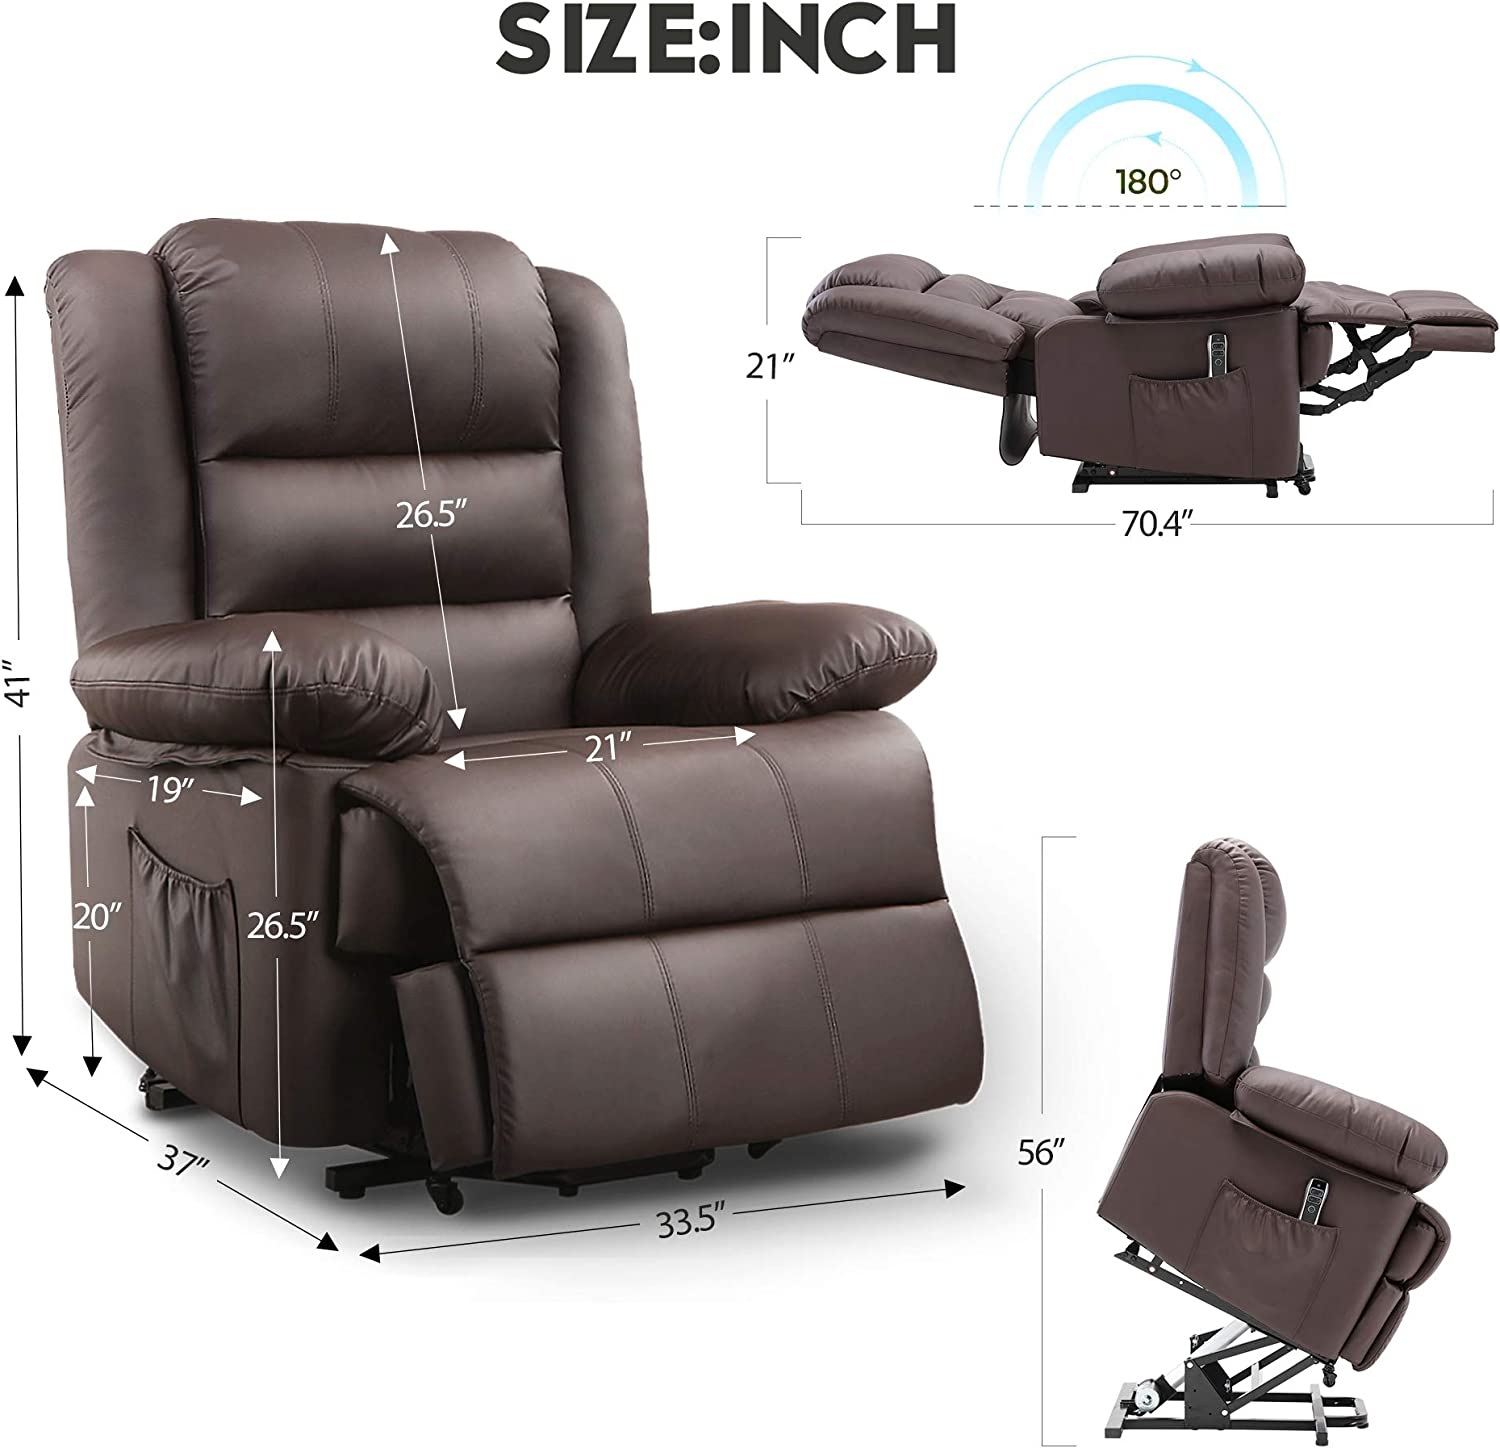 Faux Leather Upholstery Dark Brown Living Room Sofa Chair with Remote Control+USB Port DEVAISE OKIN Dual-Motor Power Lift Recliner Chair for Elderly